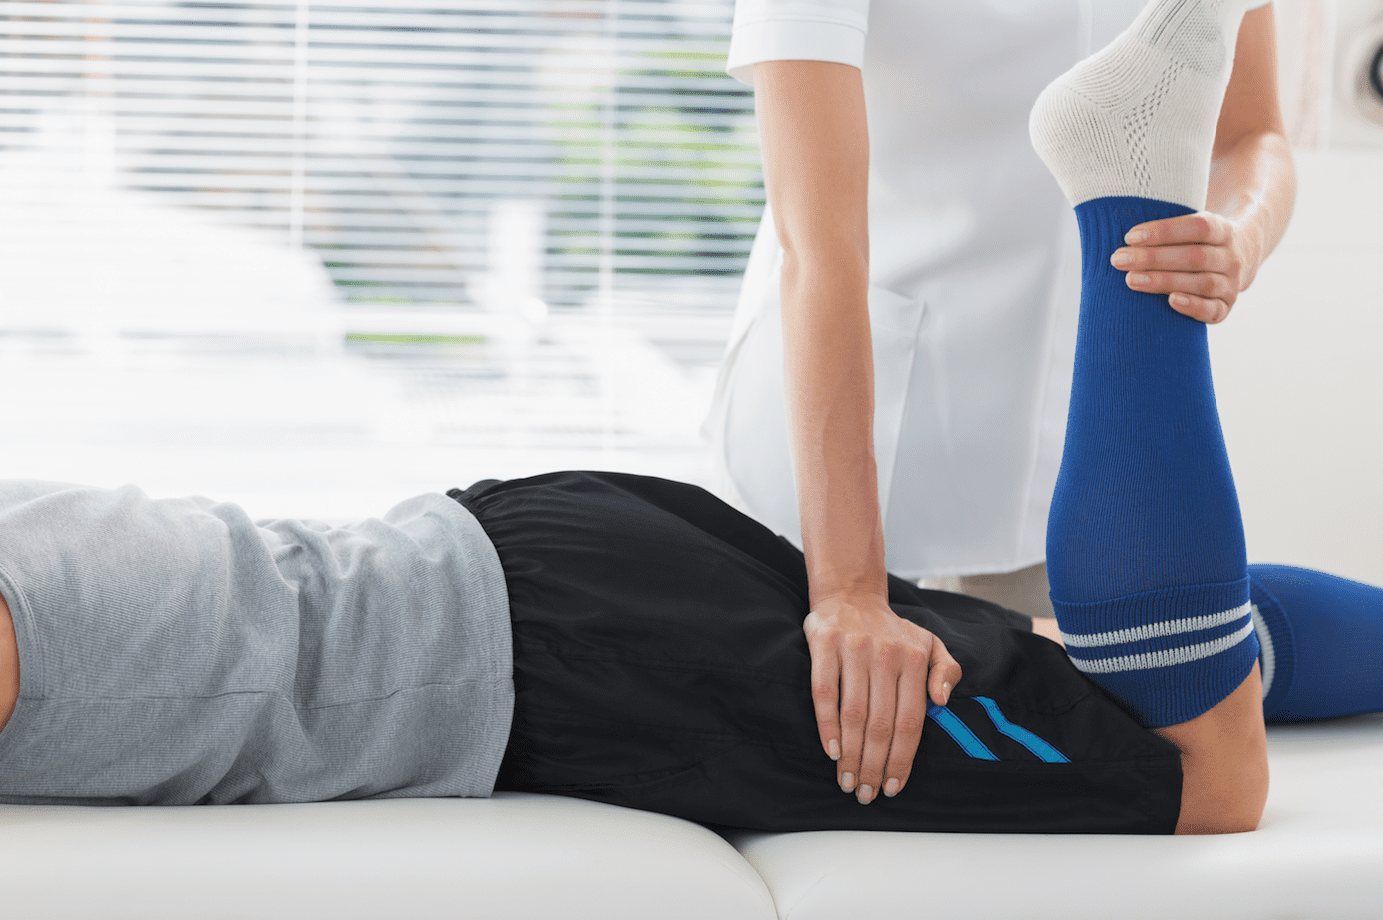 Man getting physiotherapy treatment